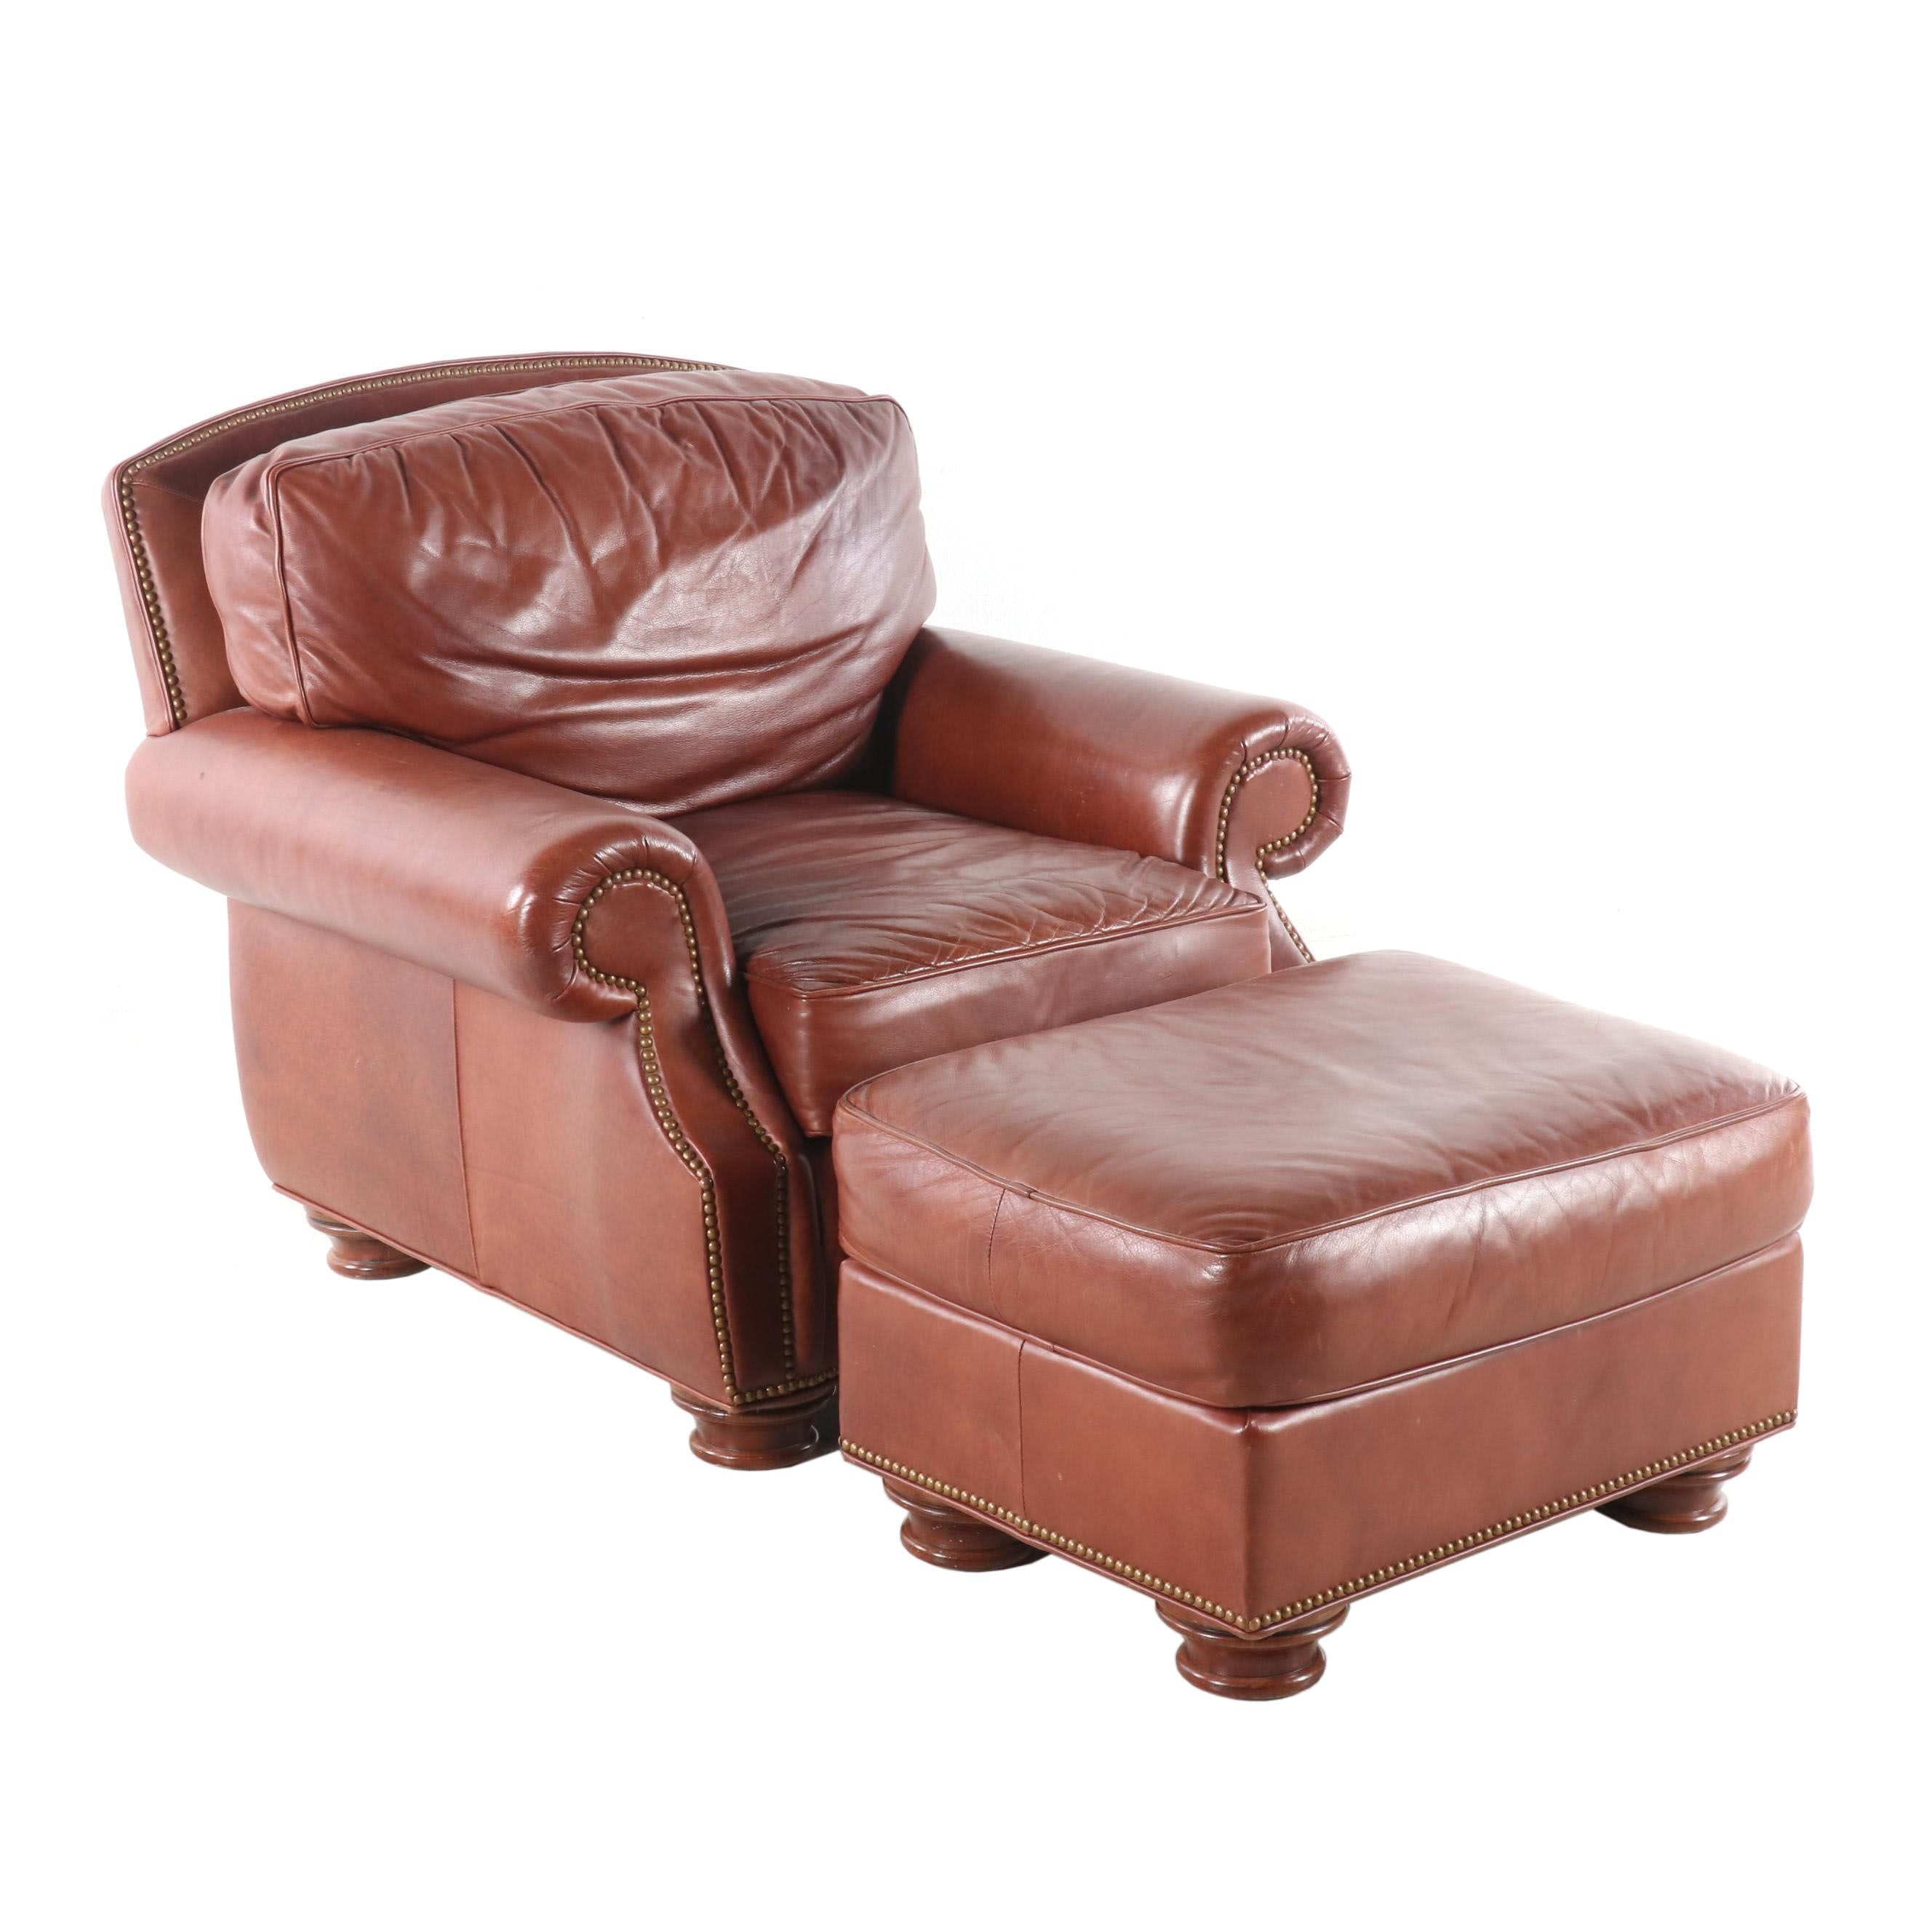 Leathercraft Brown Club Chair with Ottoman, Contemporary